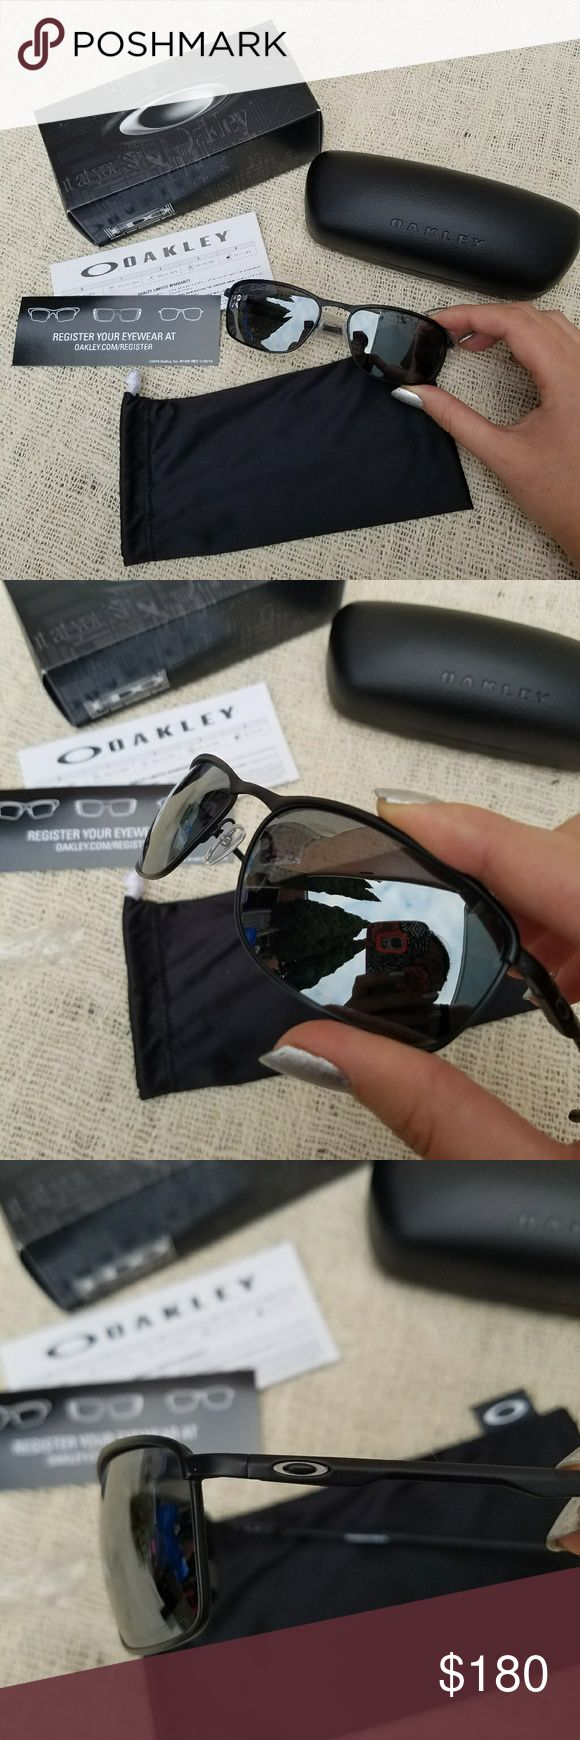 """NWB Oakley Conductor 8 Polarized Sunglasses New with box, hinged case, large drawstring microbag, and registration info! Oakley Conductor 8 sunglasses with polarized lenses. Black frames, black iridium lens. """"Integrated spring hinges, patented Unobtainium® earsocks and air-filled silicone nose pads bring a comfortably secure Three-Point Fit to a lightweight C-5™ alloy design.""""  Brand new never used, my mom got them for my BF but he's a dedicated Ray-Bans guy! Offers welcome through offer…"""